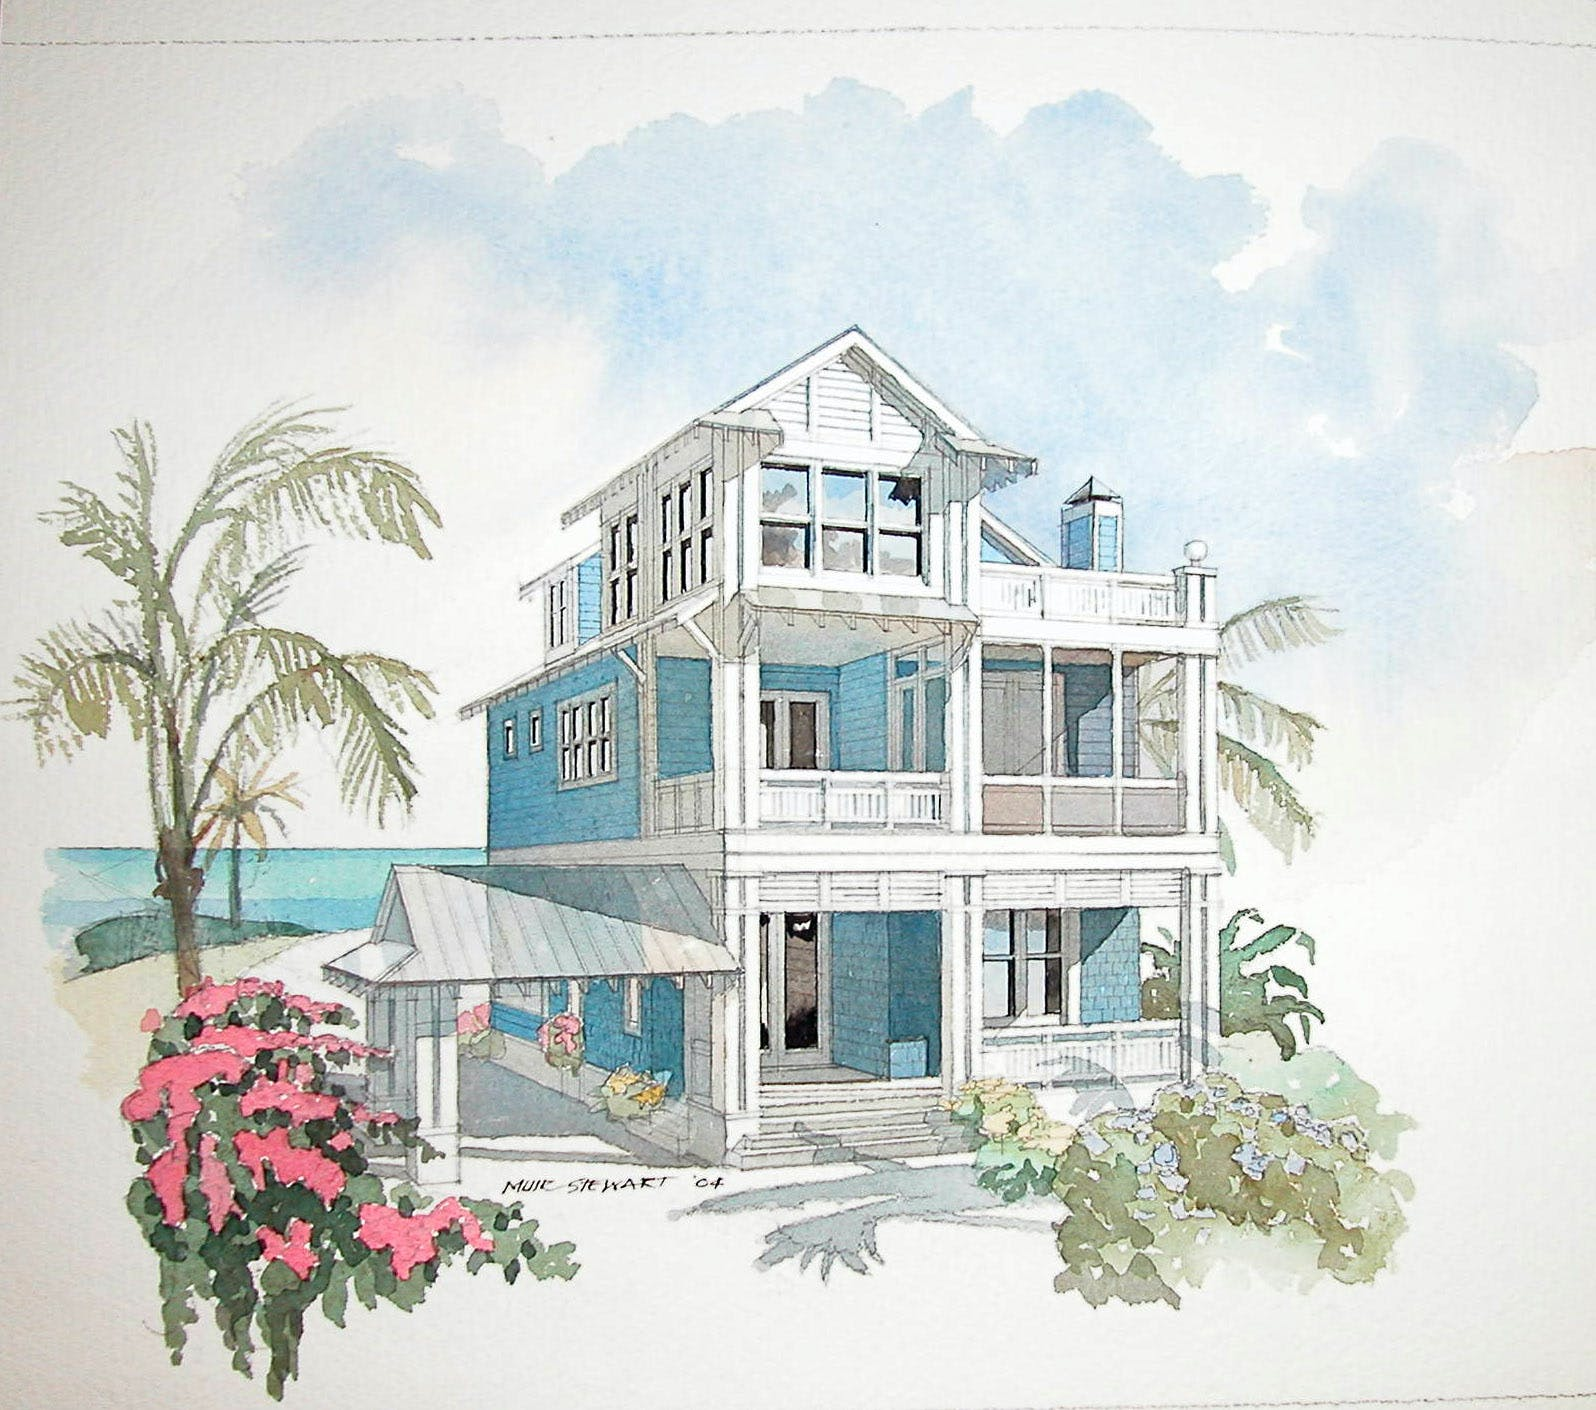 coastal home design. Water Color of Family Central by Mur Stewart COASTAL HOME DESIGN  Mel Snyder Archinect